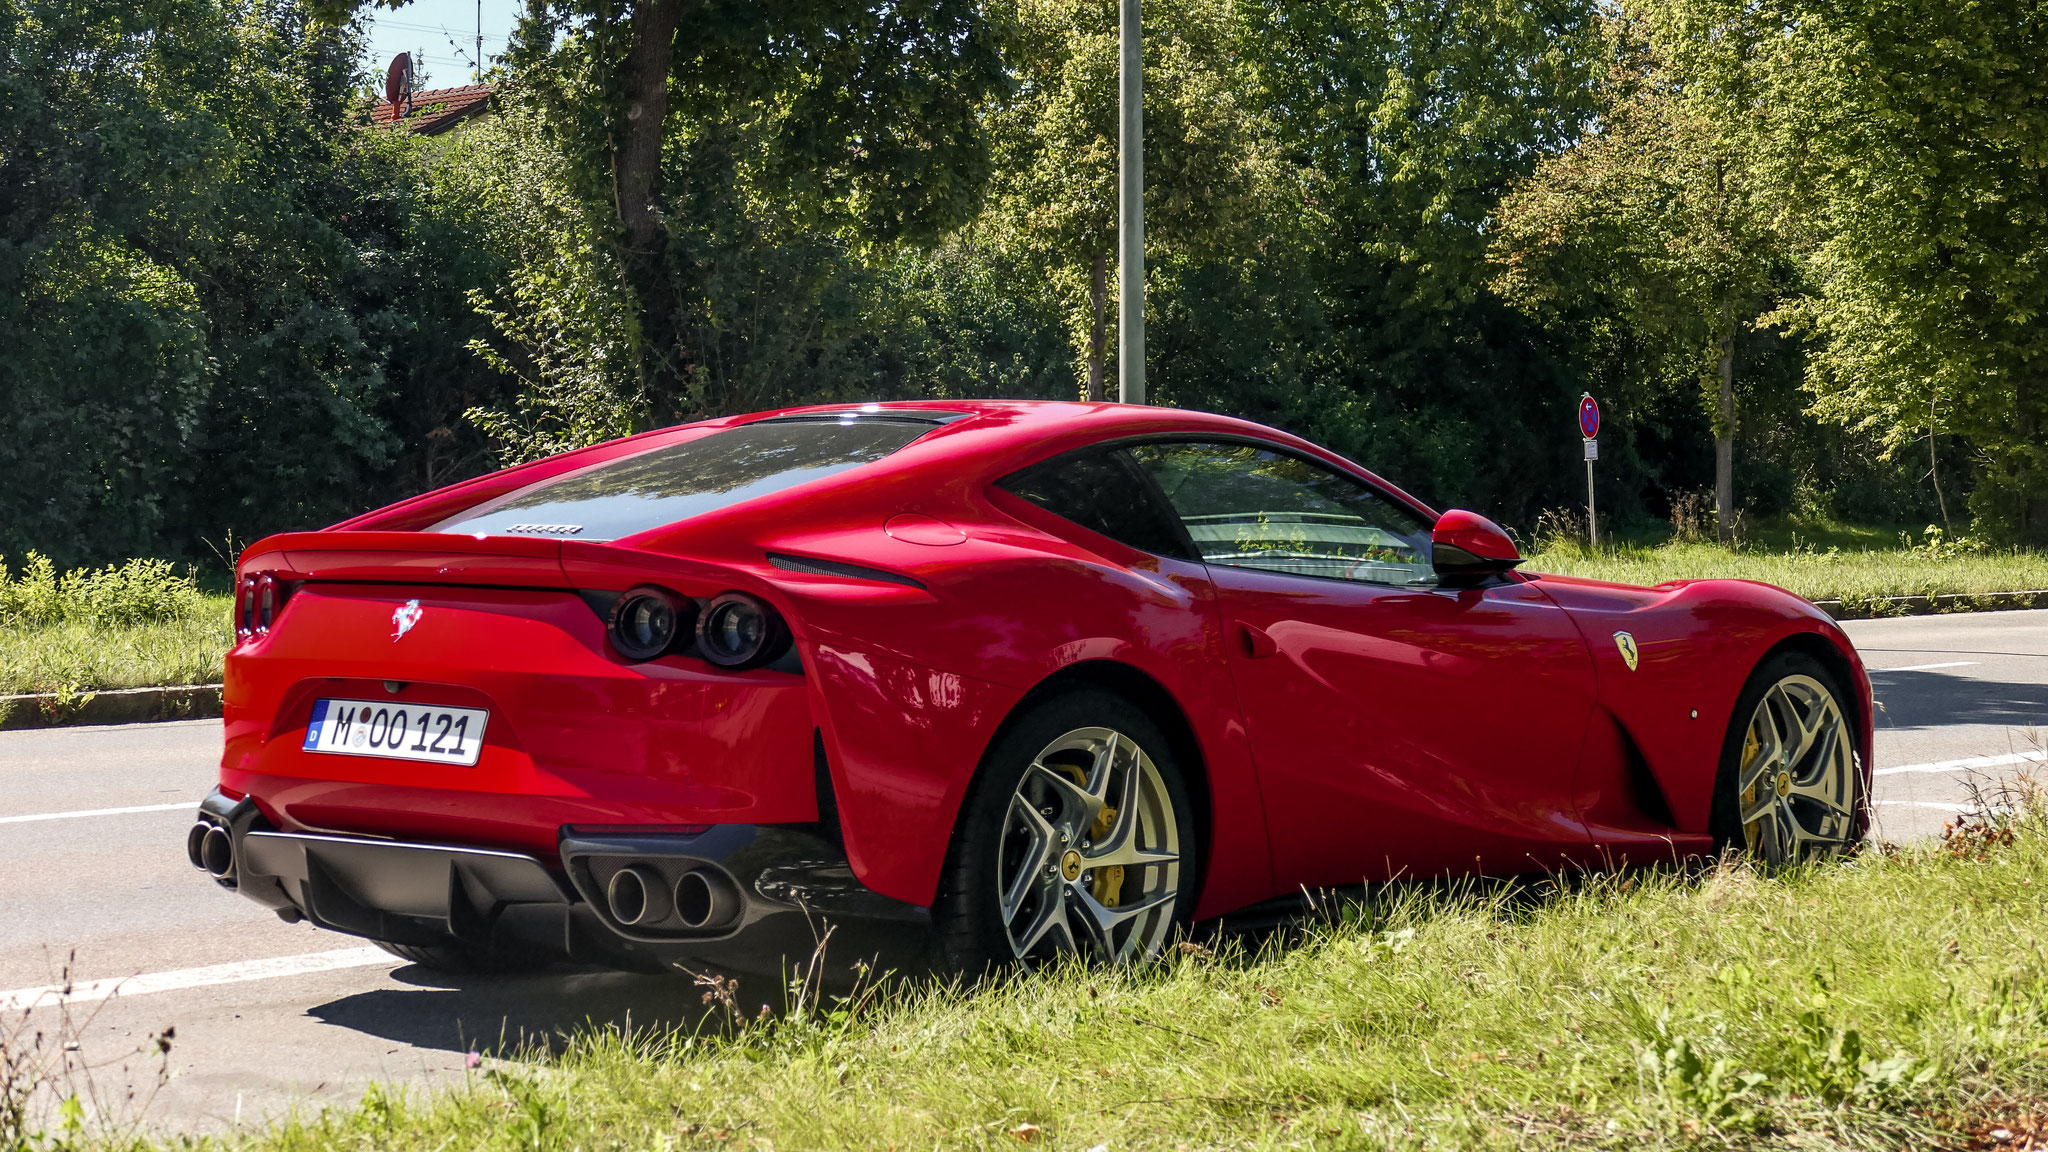 Ferrari 812 Superfast - M-00-121